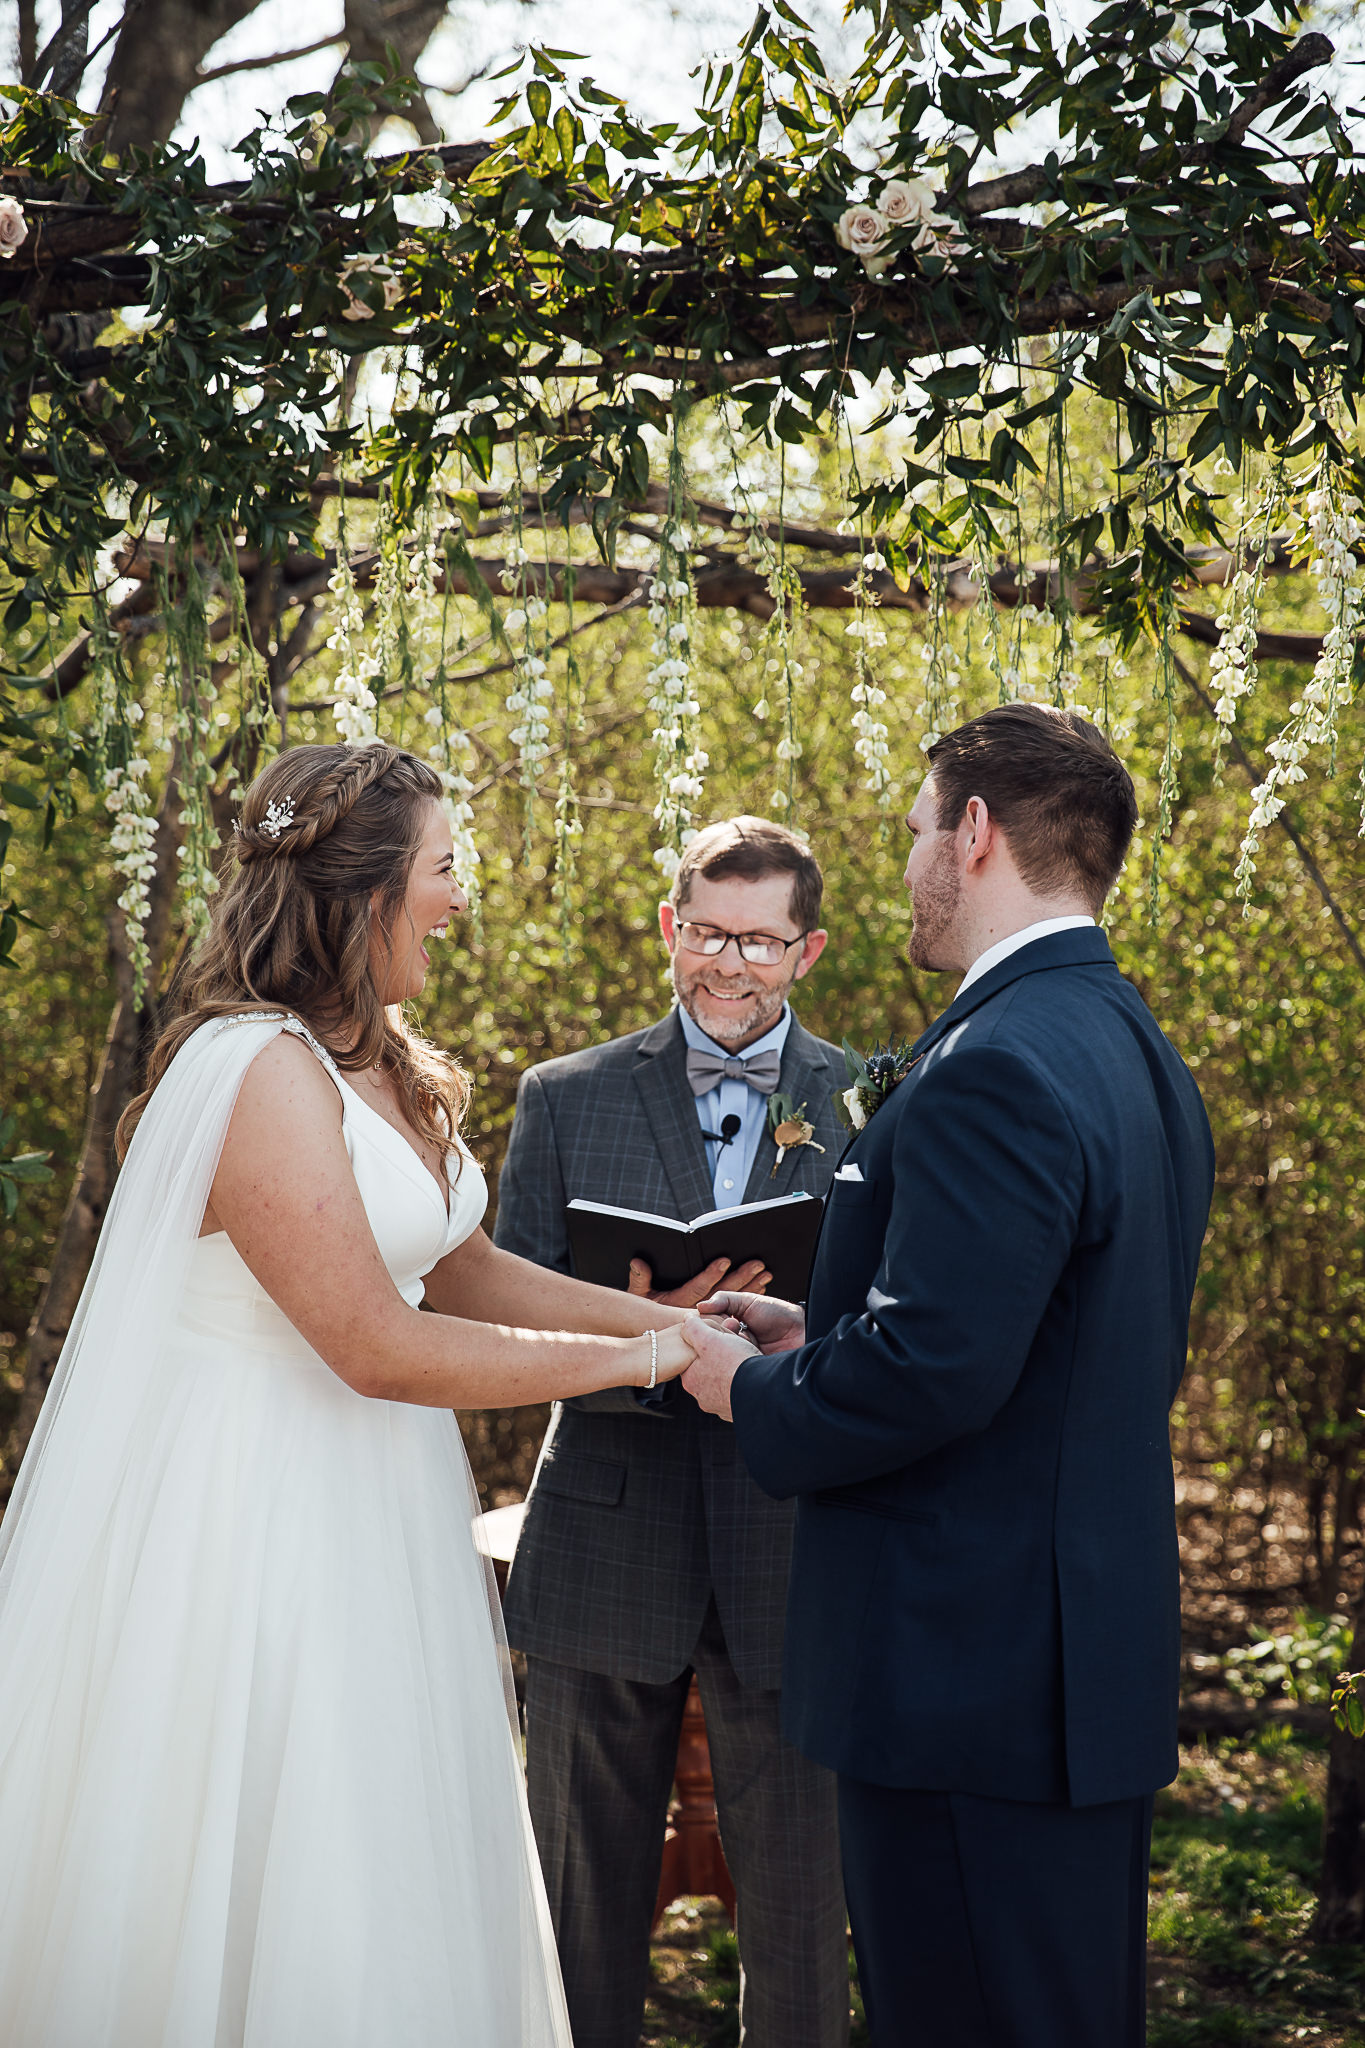 memphis-wedding-photographer-meadow-hill-farms-thewarmtharoundyou (34 of 93).jpg